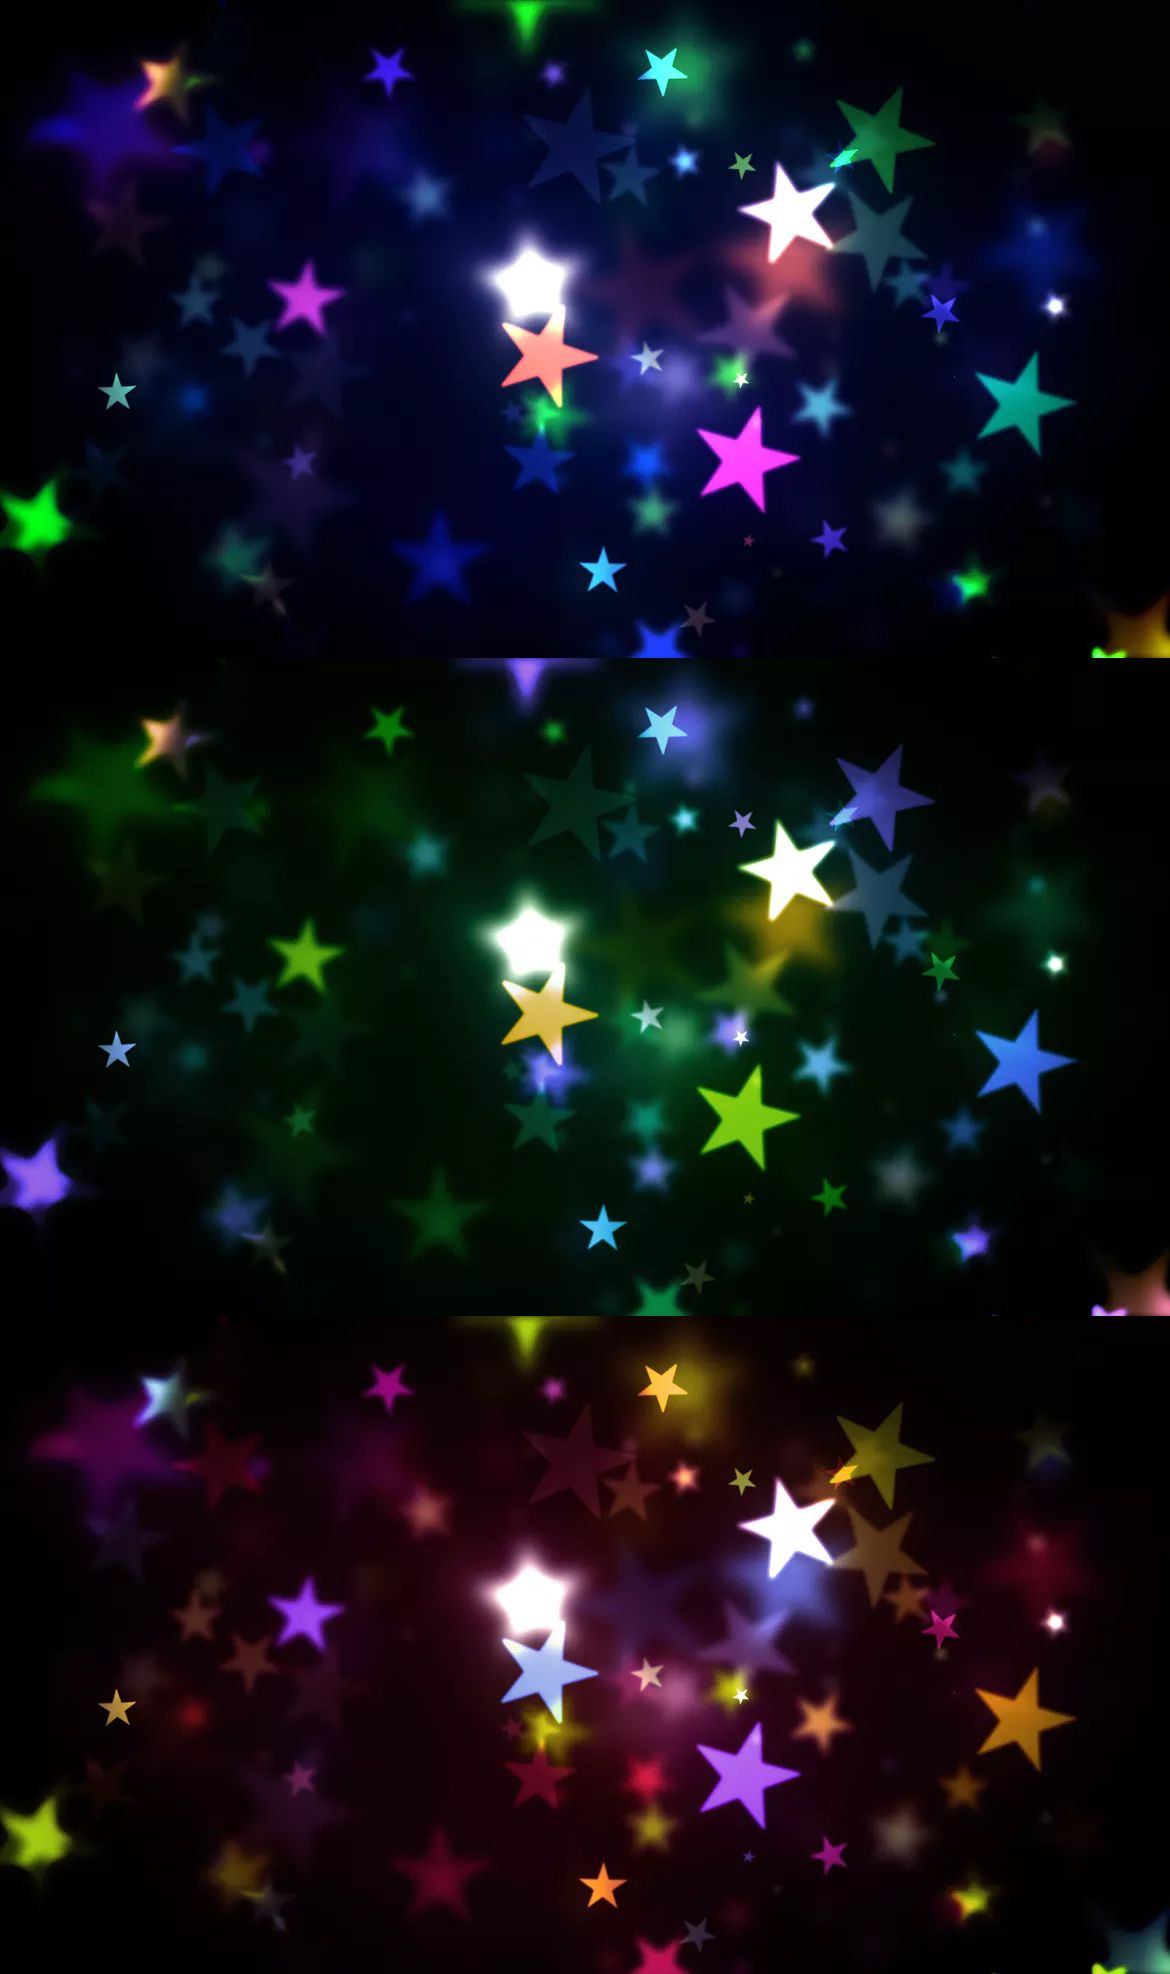 Colorful Shining Stars By Fxboxx On Envato Elements Star Background Glitter Phone Wallpaper Star Wallpaper